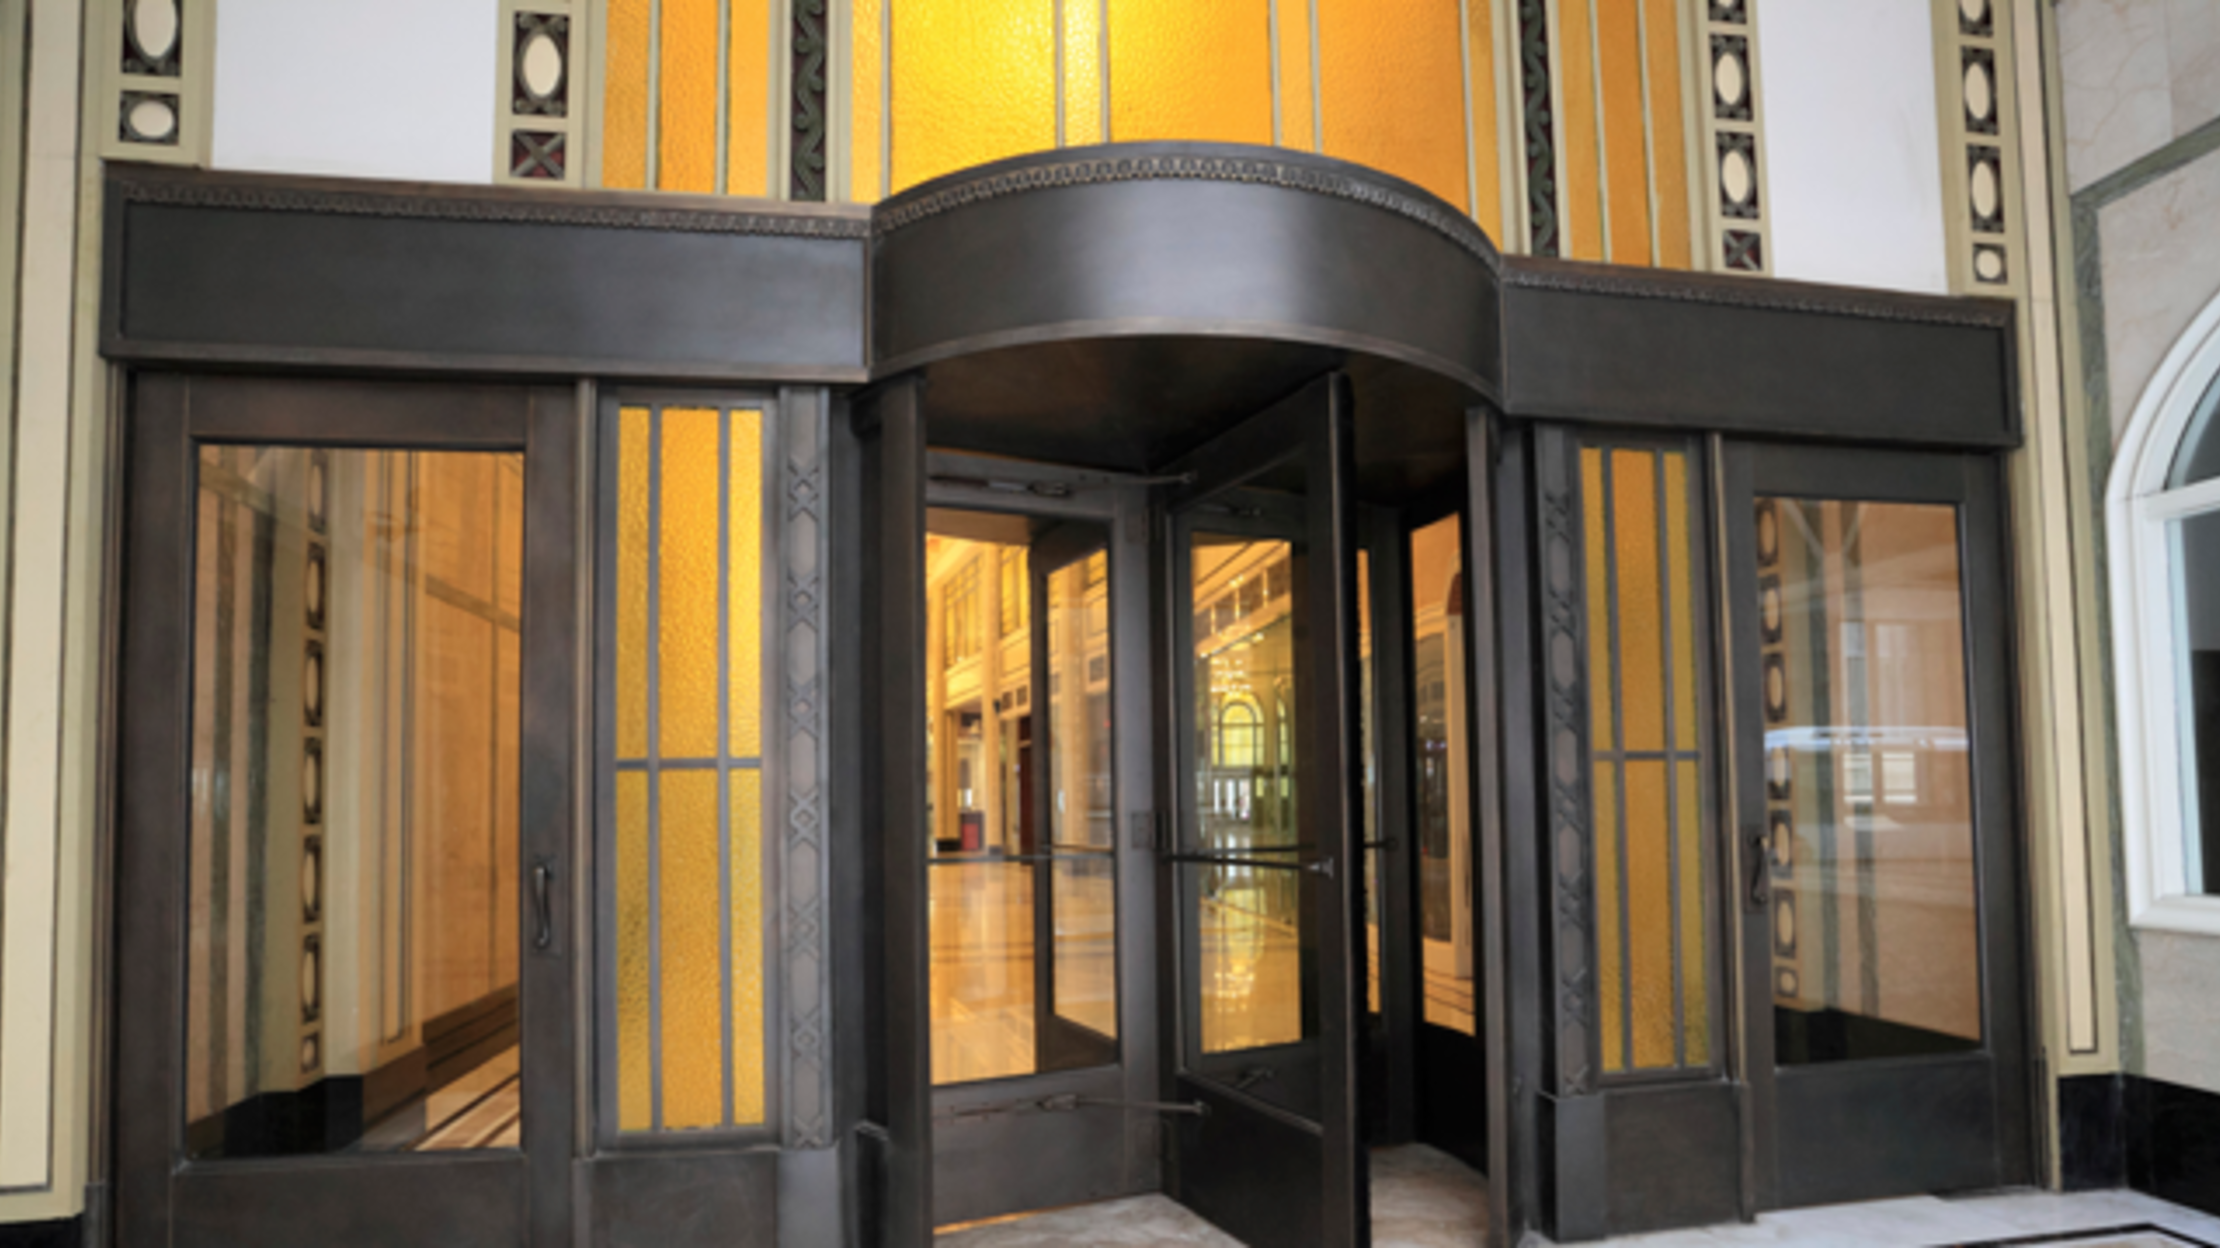 Get a clear idea about the installing options for revolving doors